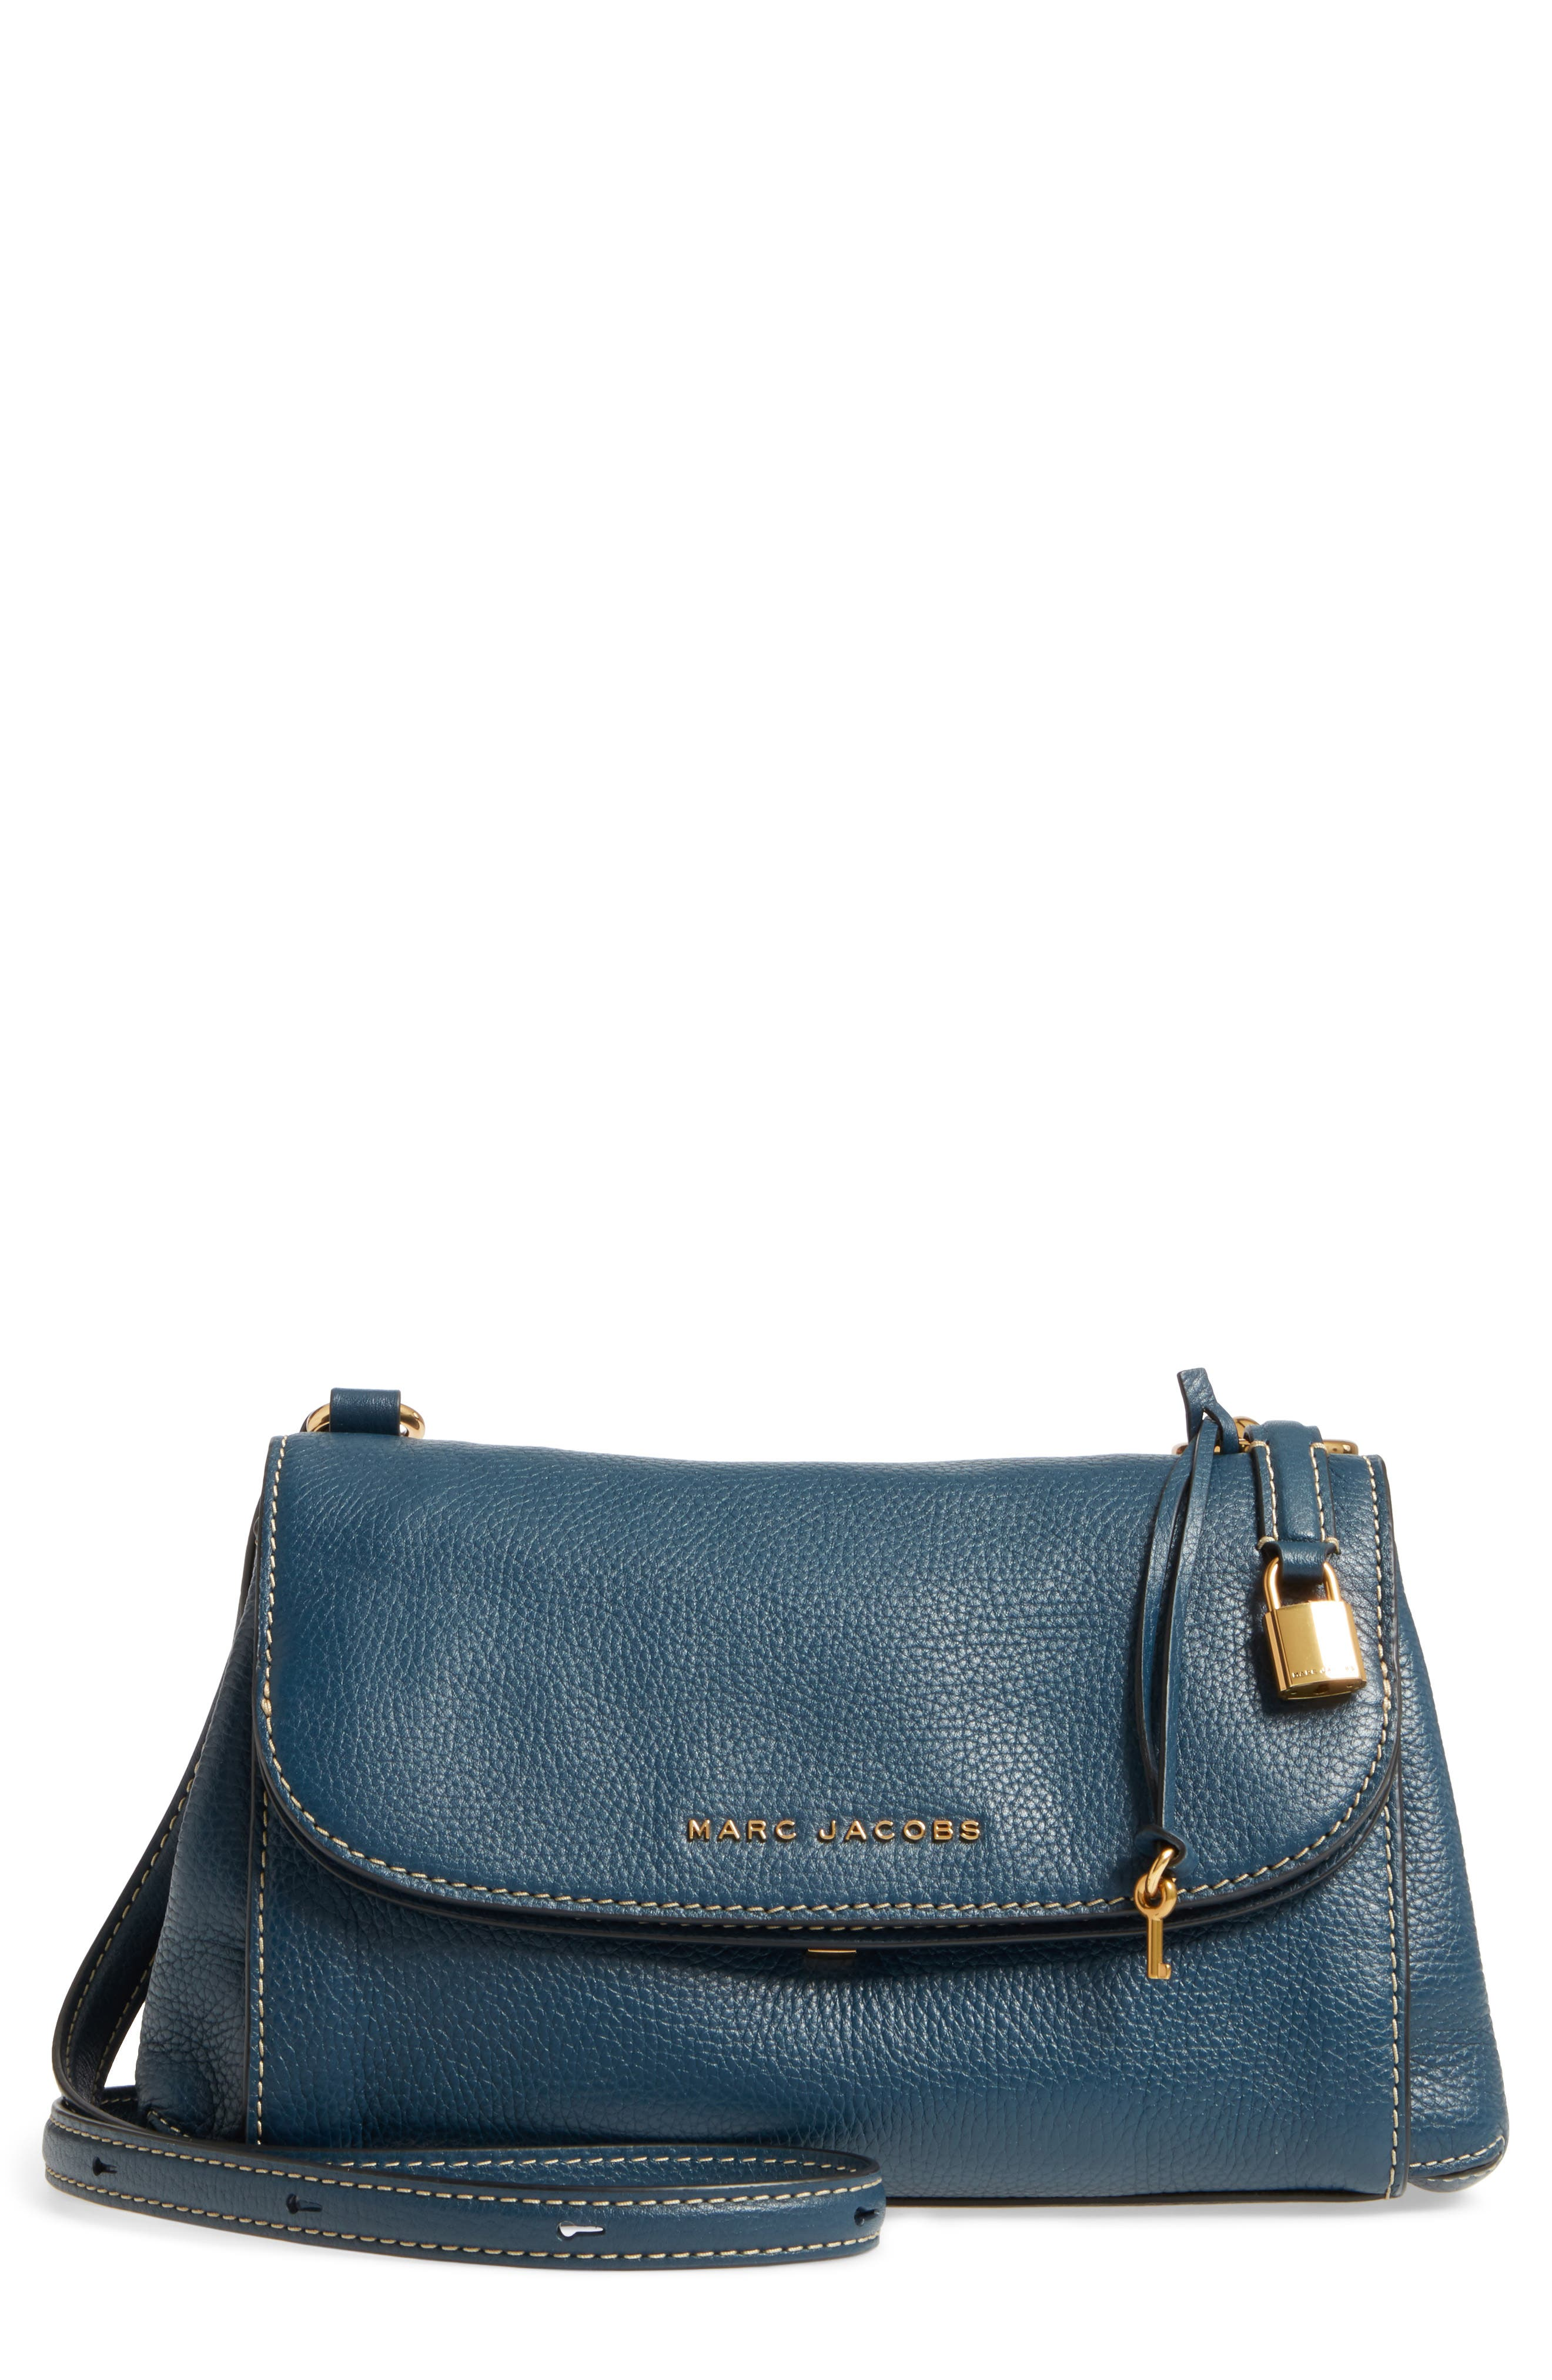 MARC JACOBS The Grind Boho Leather Shoulder Bag